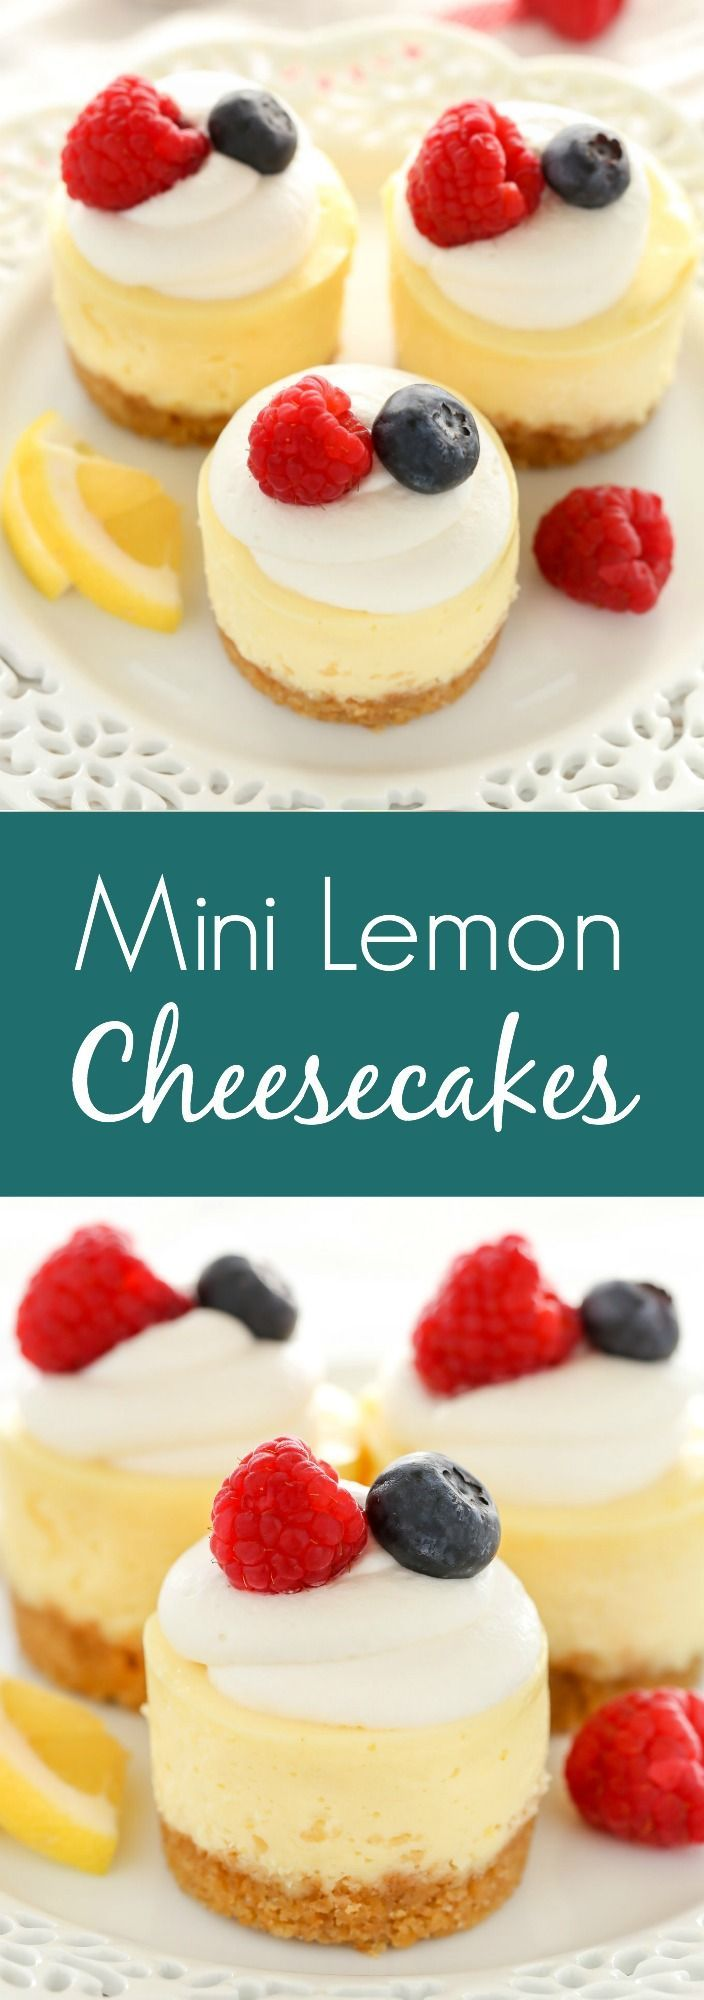 These Mini Lemon Cheesecakes feature an easy homemade graham cracker crust topped with a smooth and creamy lemon cheesecake filling. Top them with some fresh whipped cream and berries for an easy dessert everyone will love! #cheesecakes